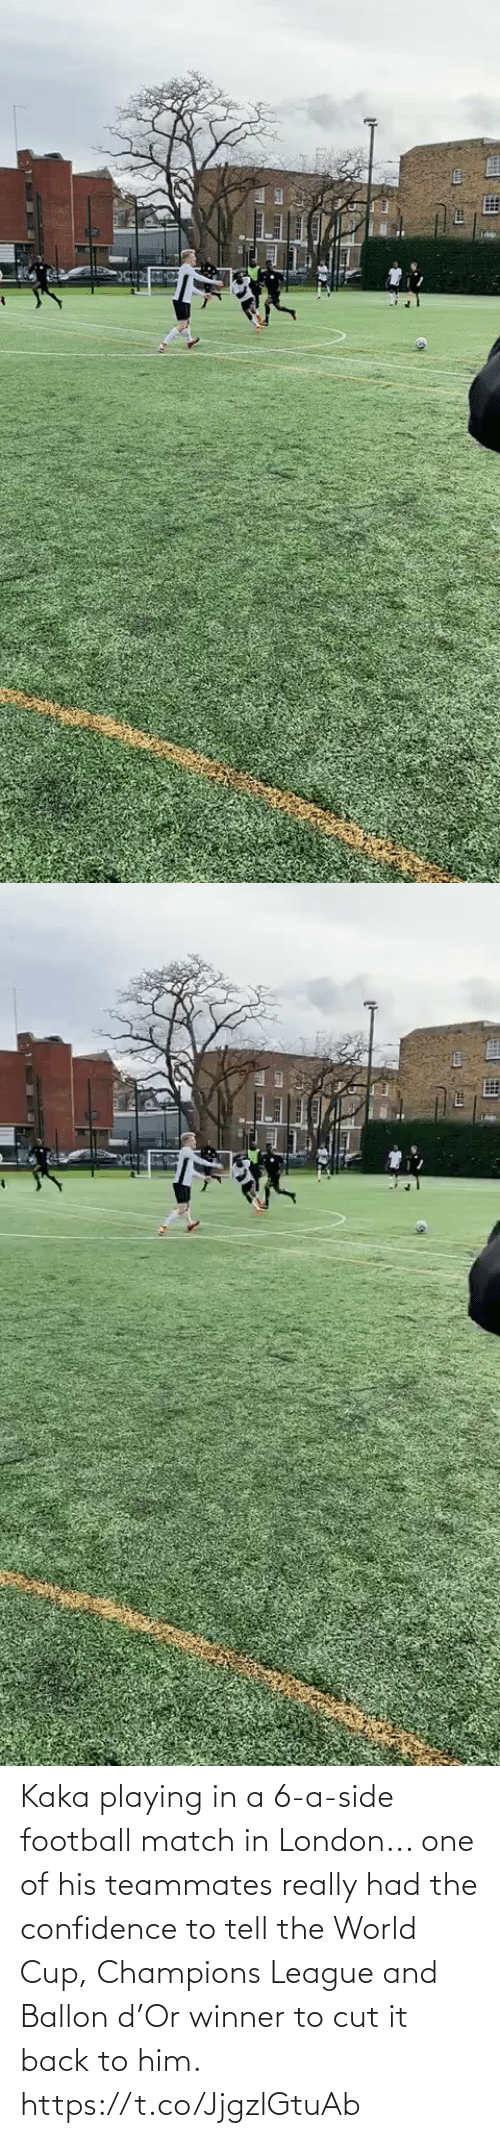 him: Kaka playing in a 6-a-side football match in London... one of his teammates really had the confidence to tell the World Cup, Champions League and Ballon d'Or winner to cut it back to him.   https://t.co/JjgzlGtuAb